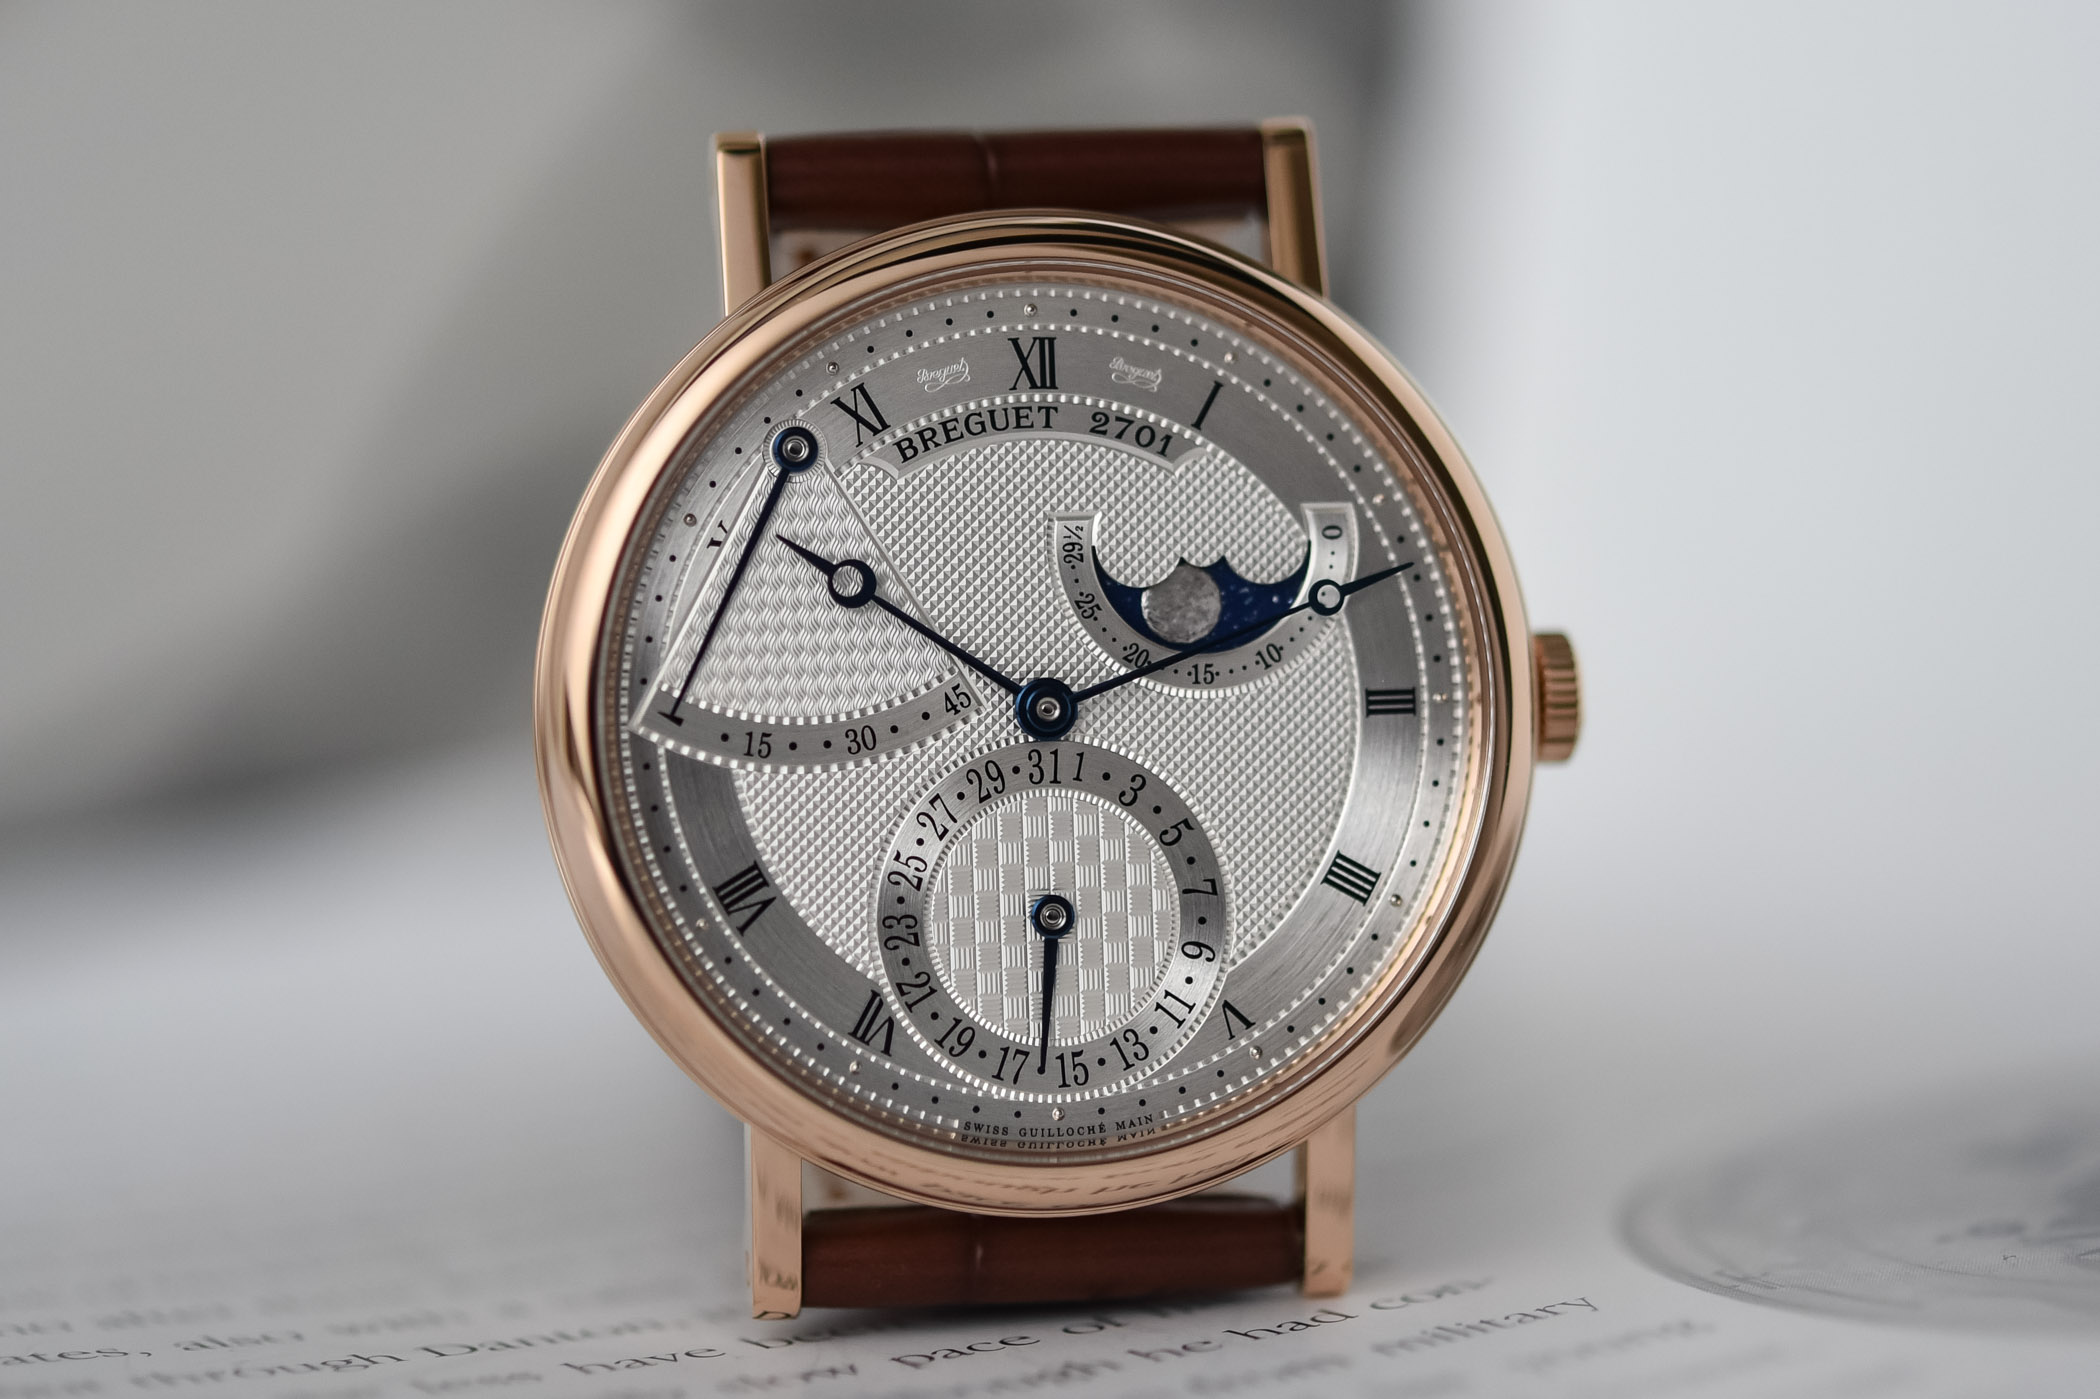 2020 Breguet Classique 7137 Moon Power Reserve Silver Pink Gold 7137BR/15/9VU